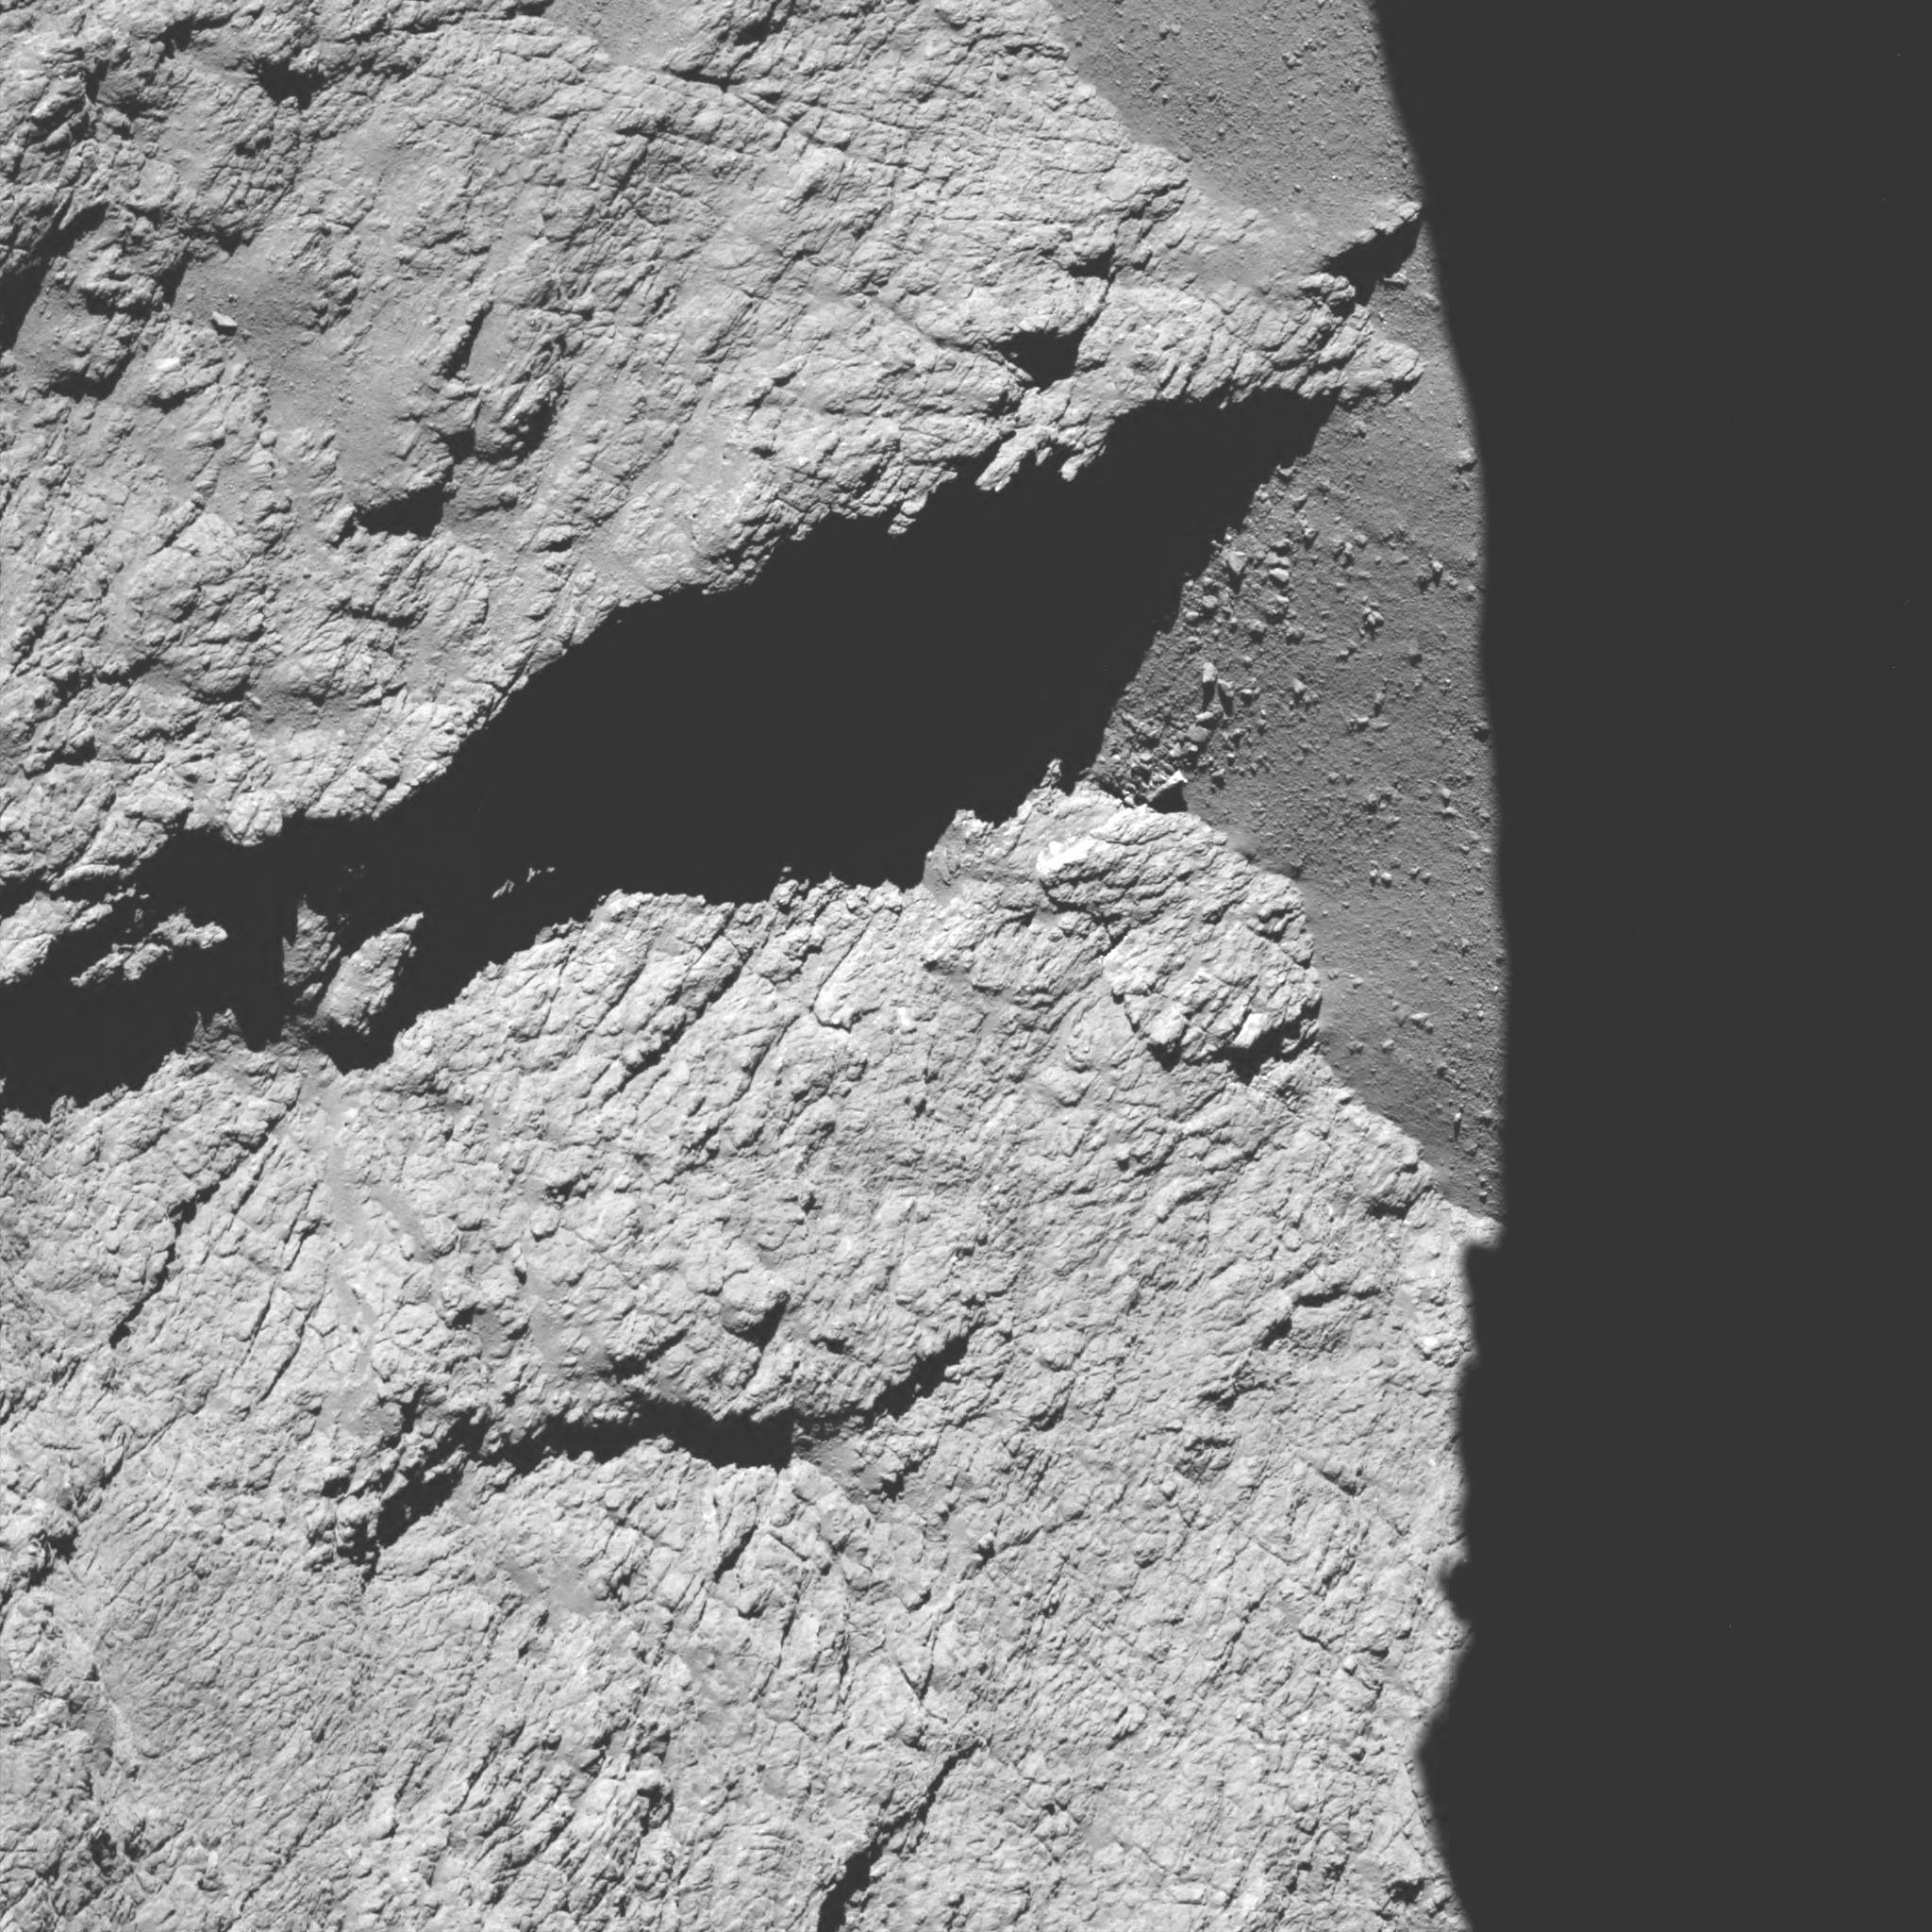 comet_from_11-7_km_narrow-angle_camera